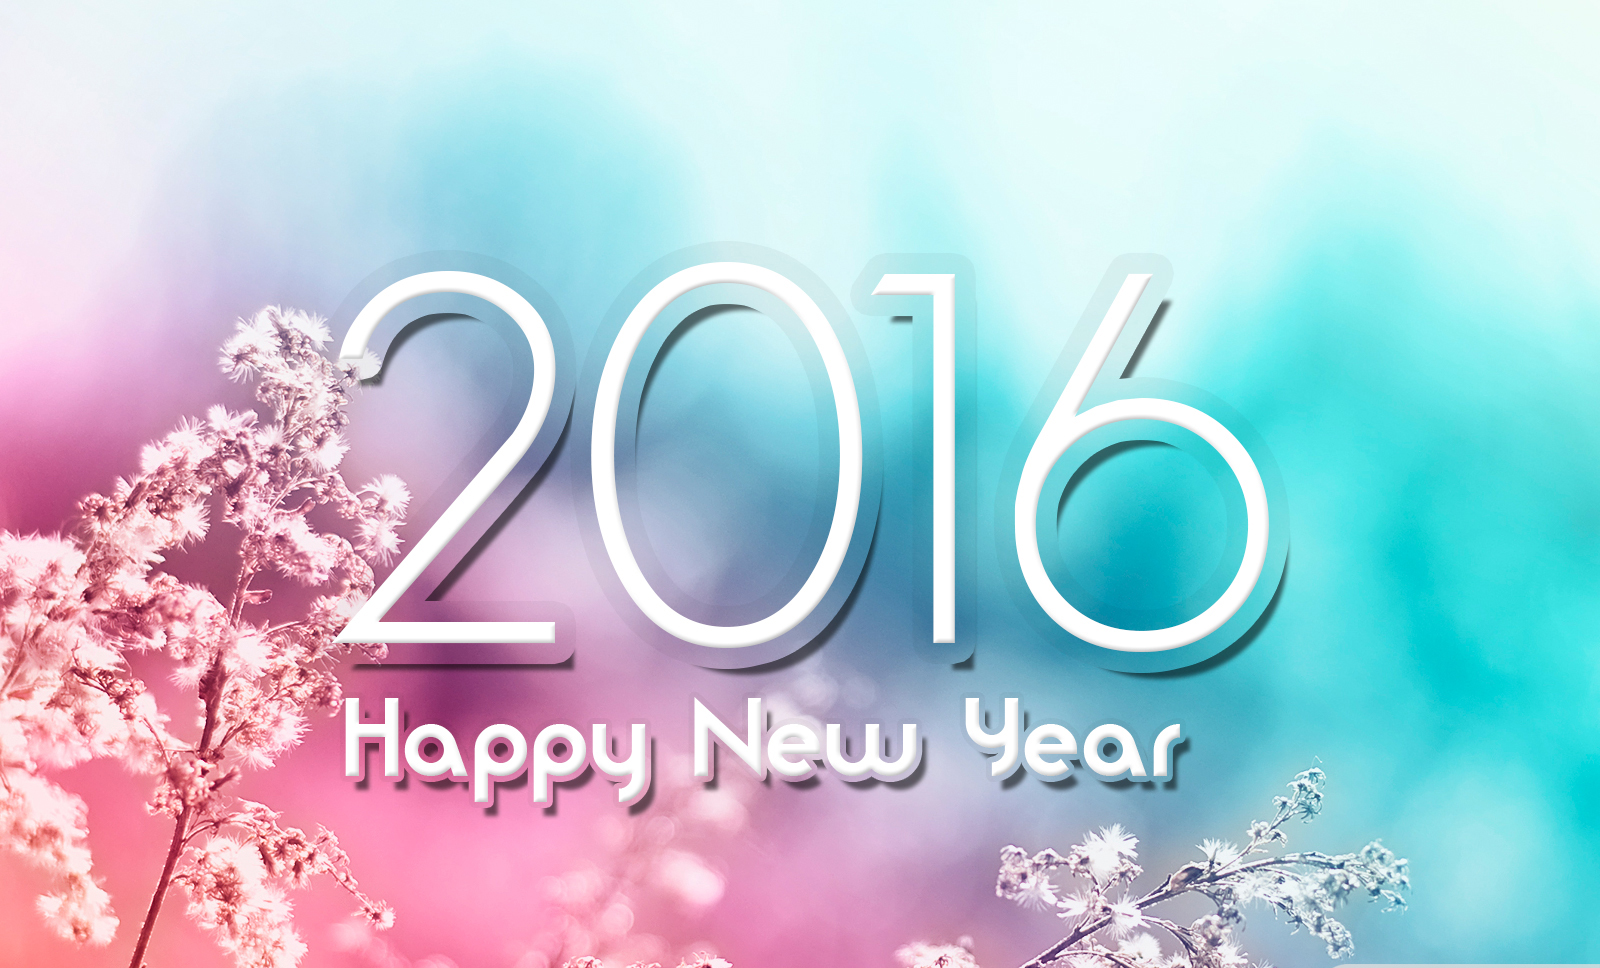 winter 2016 happy new year wallpapers